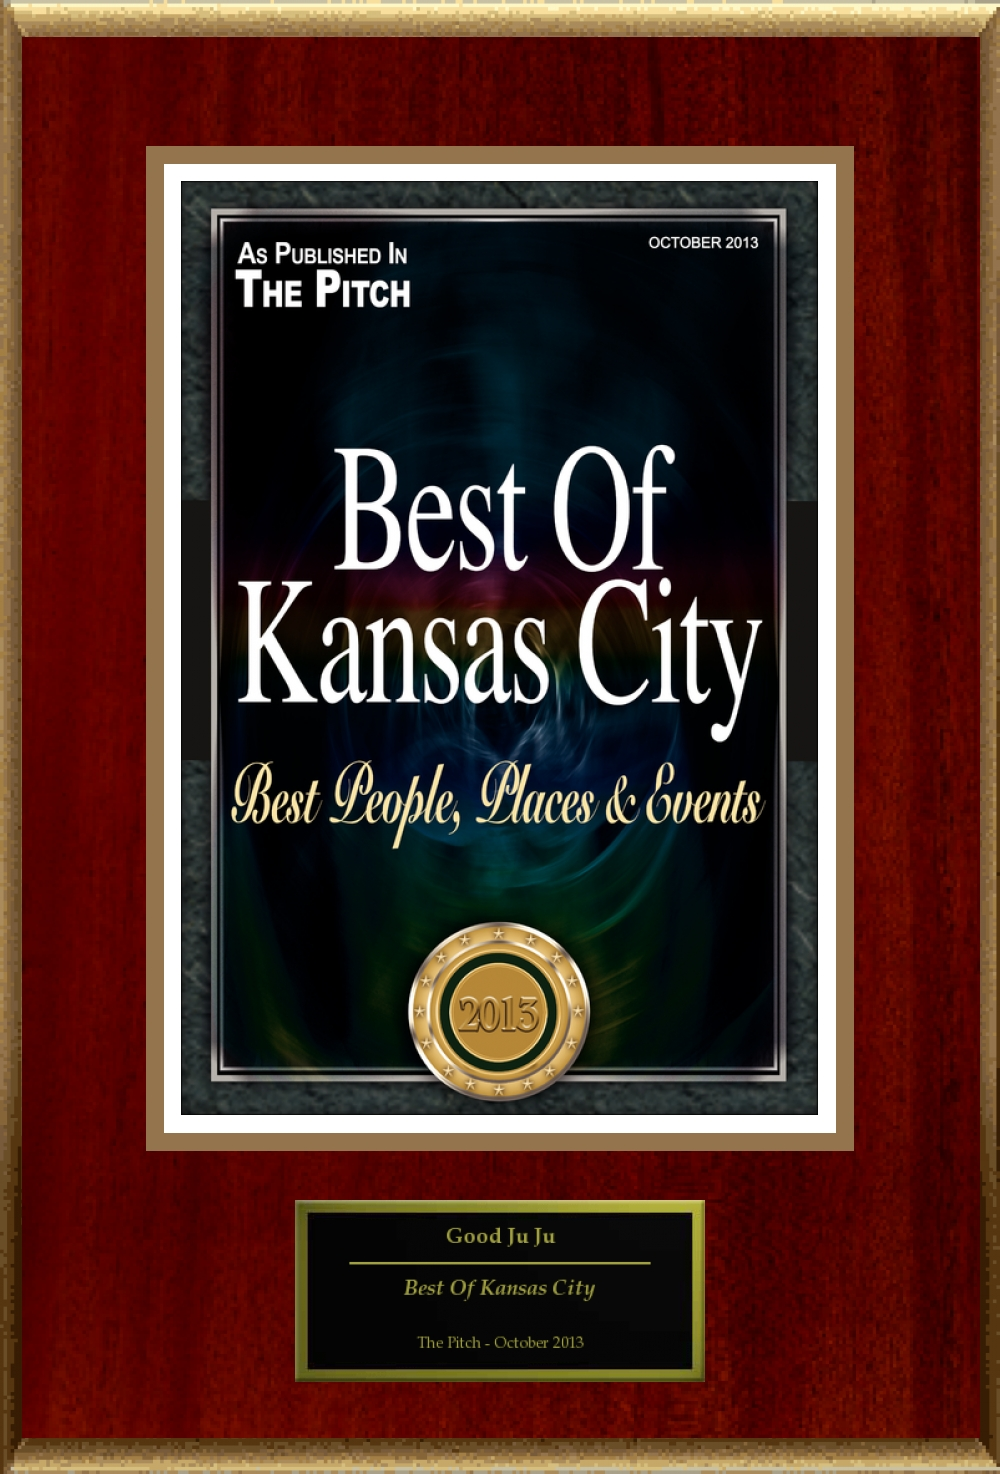 The Pitch Magazine City's Best Award 2013